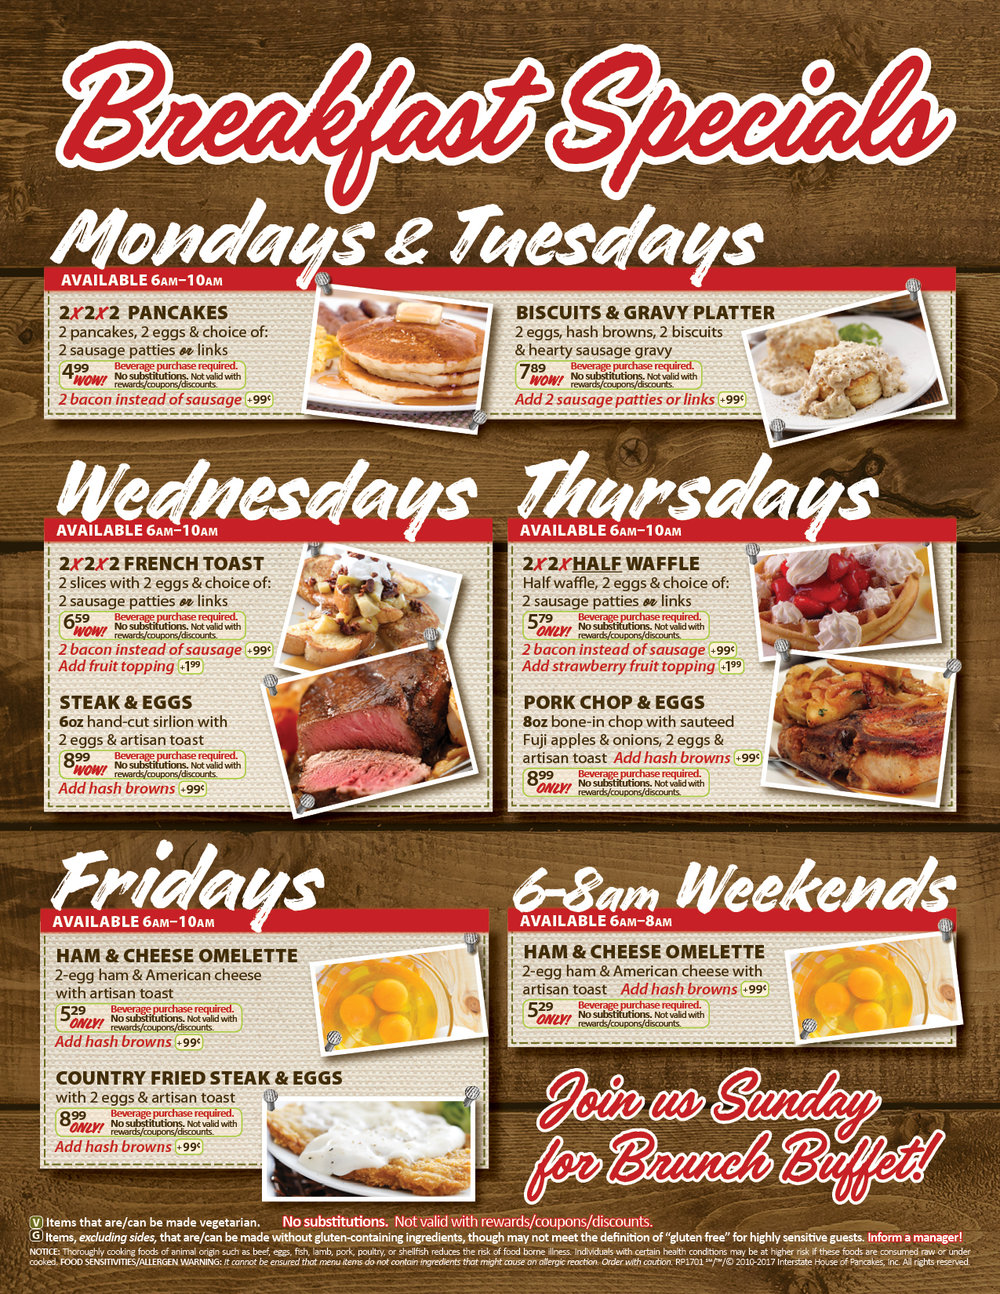 Breakfast Specials at Roll'n Pin